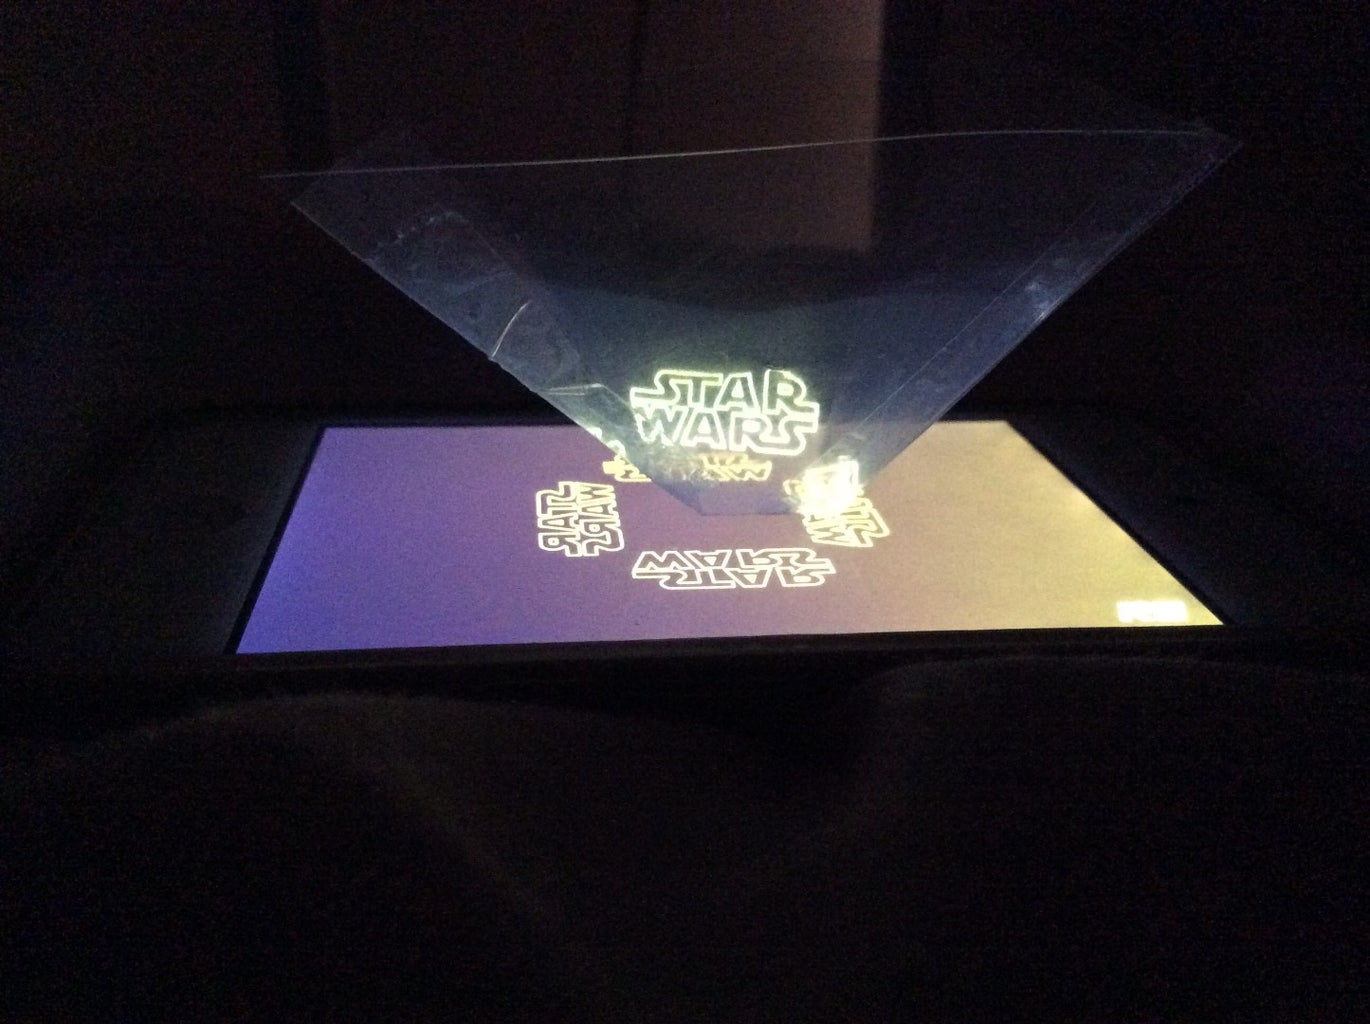 How to Make a Star Wars Hologram